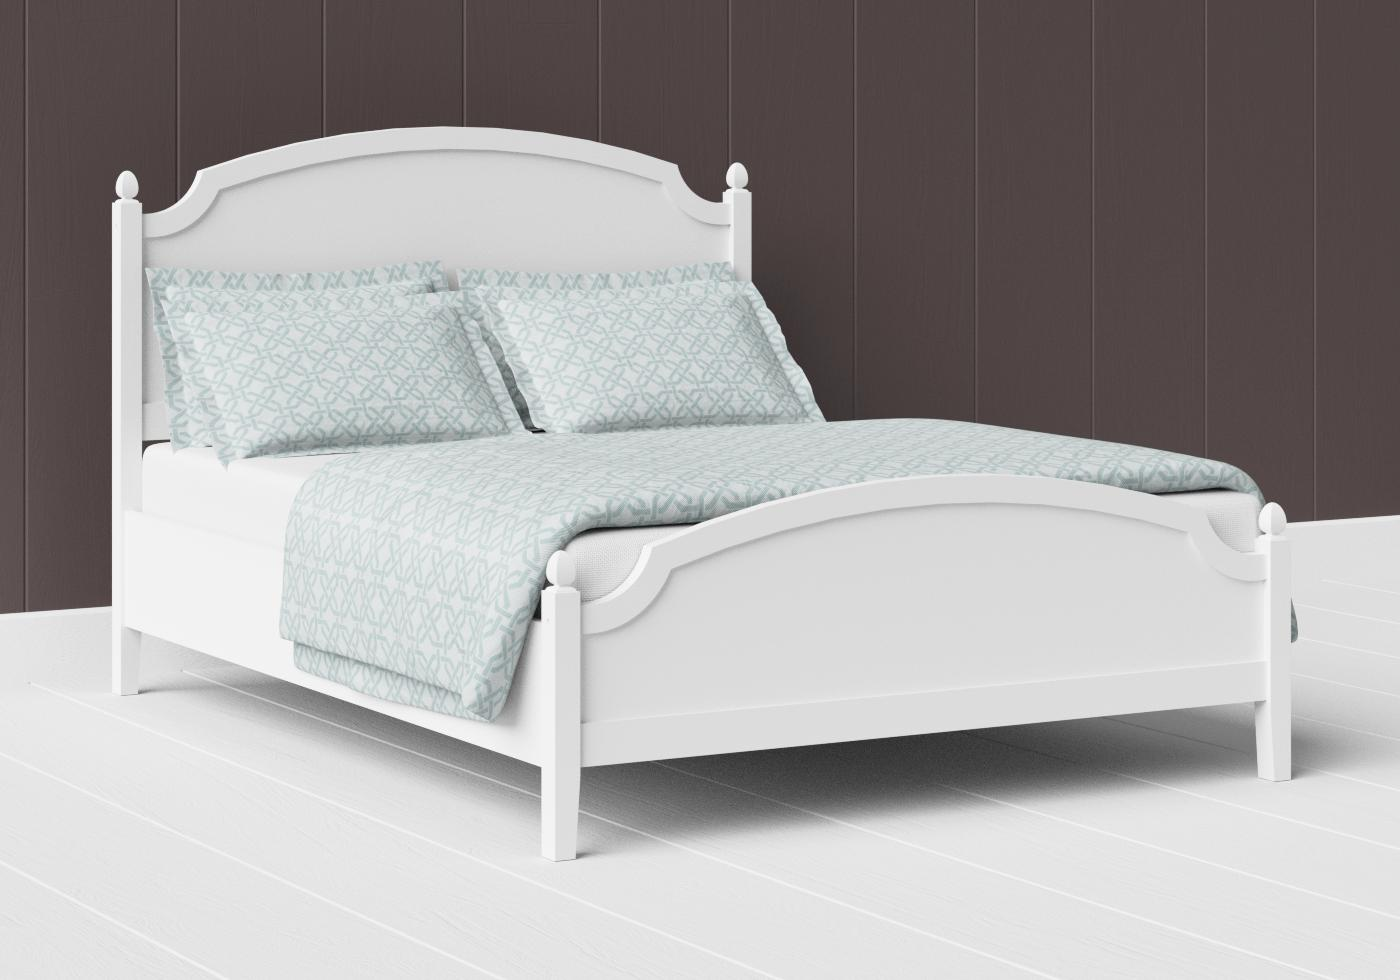 Kipling low footend painted wood bed in satin white